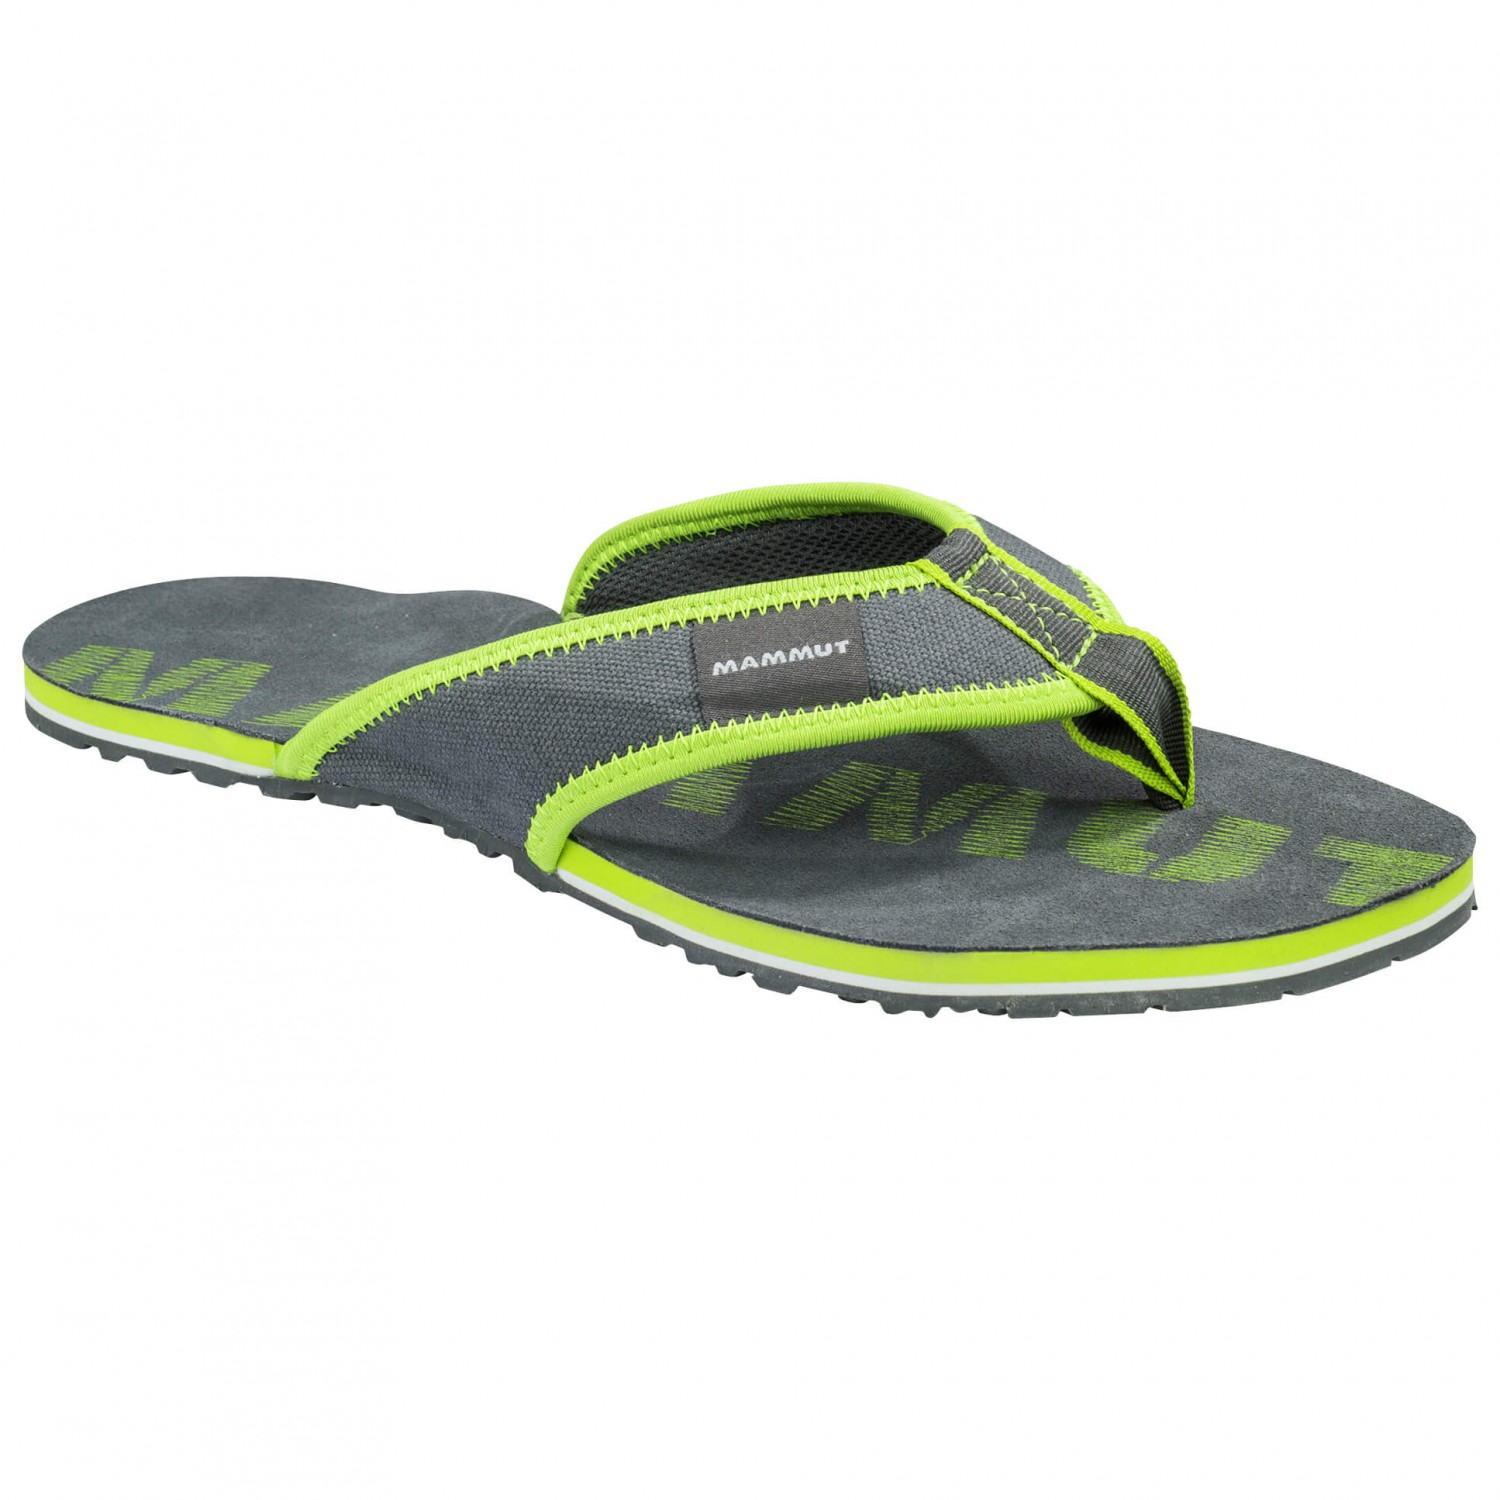 Mammut - Sloper Flip Low - Sandalen Graphite / Sprout